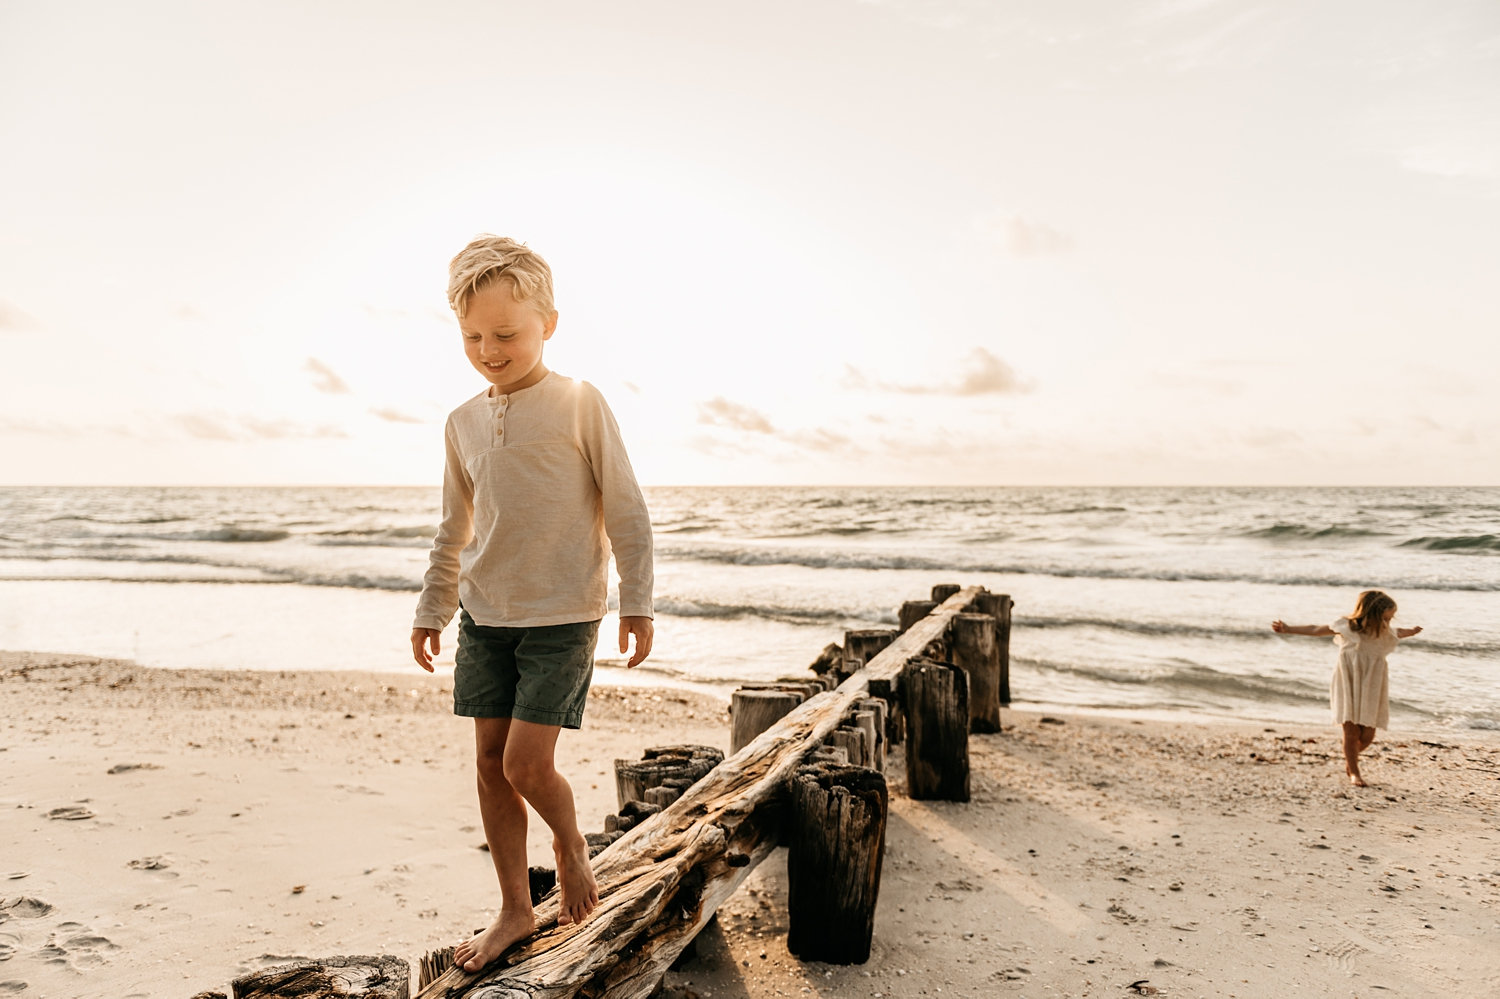 blonde boy walking on beach pilings with little sister in background, Ryaphotos